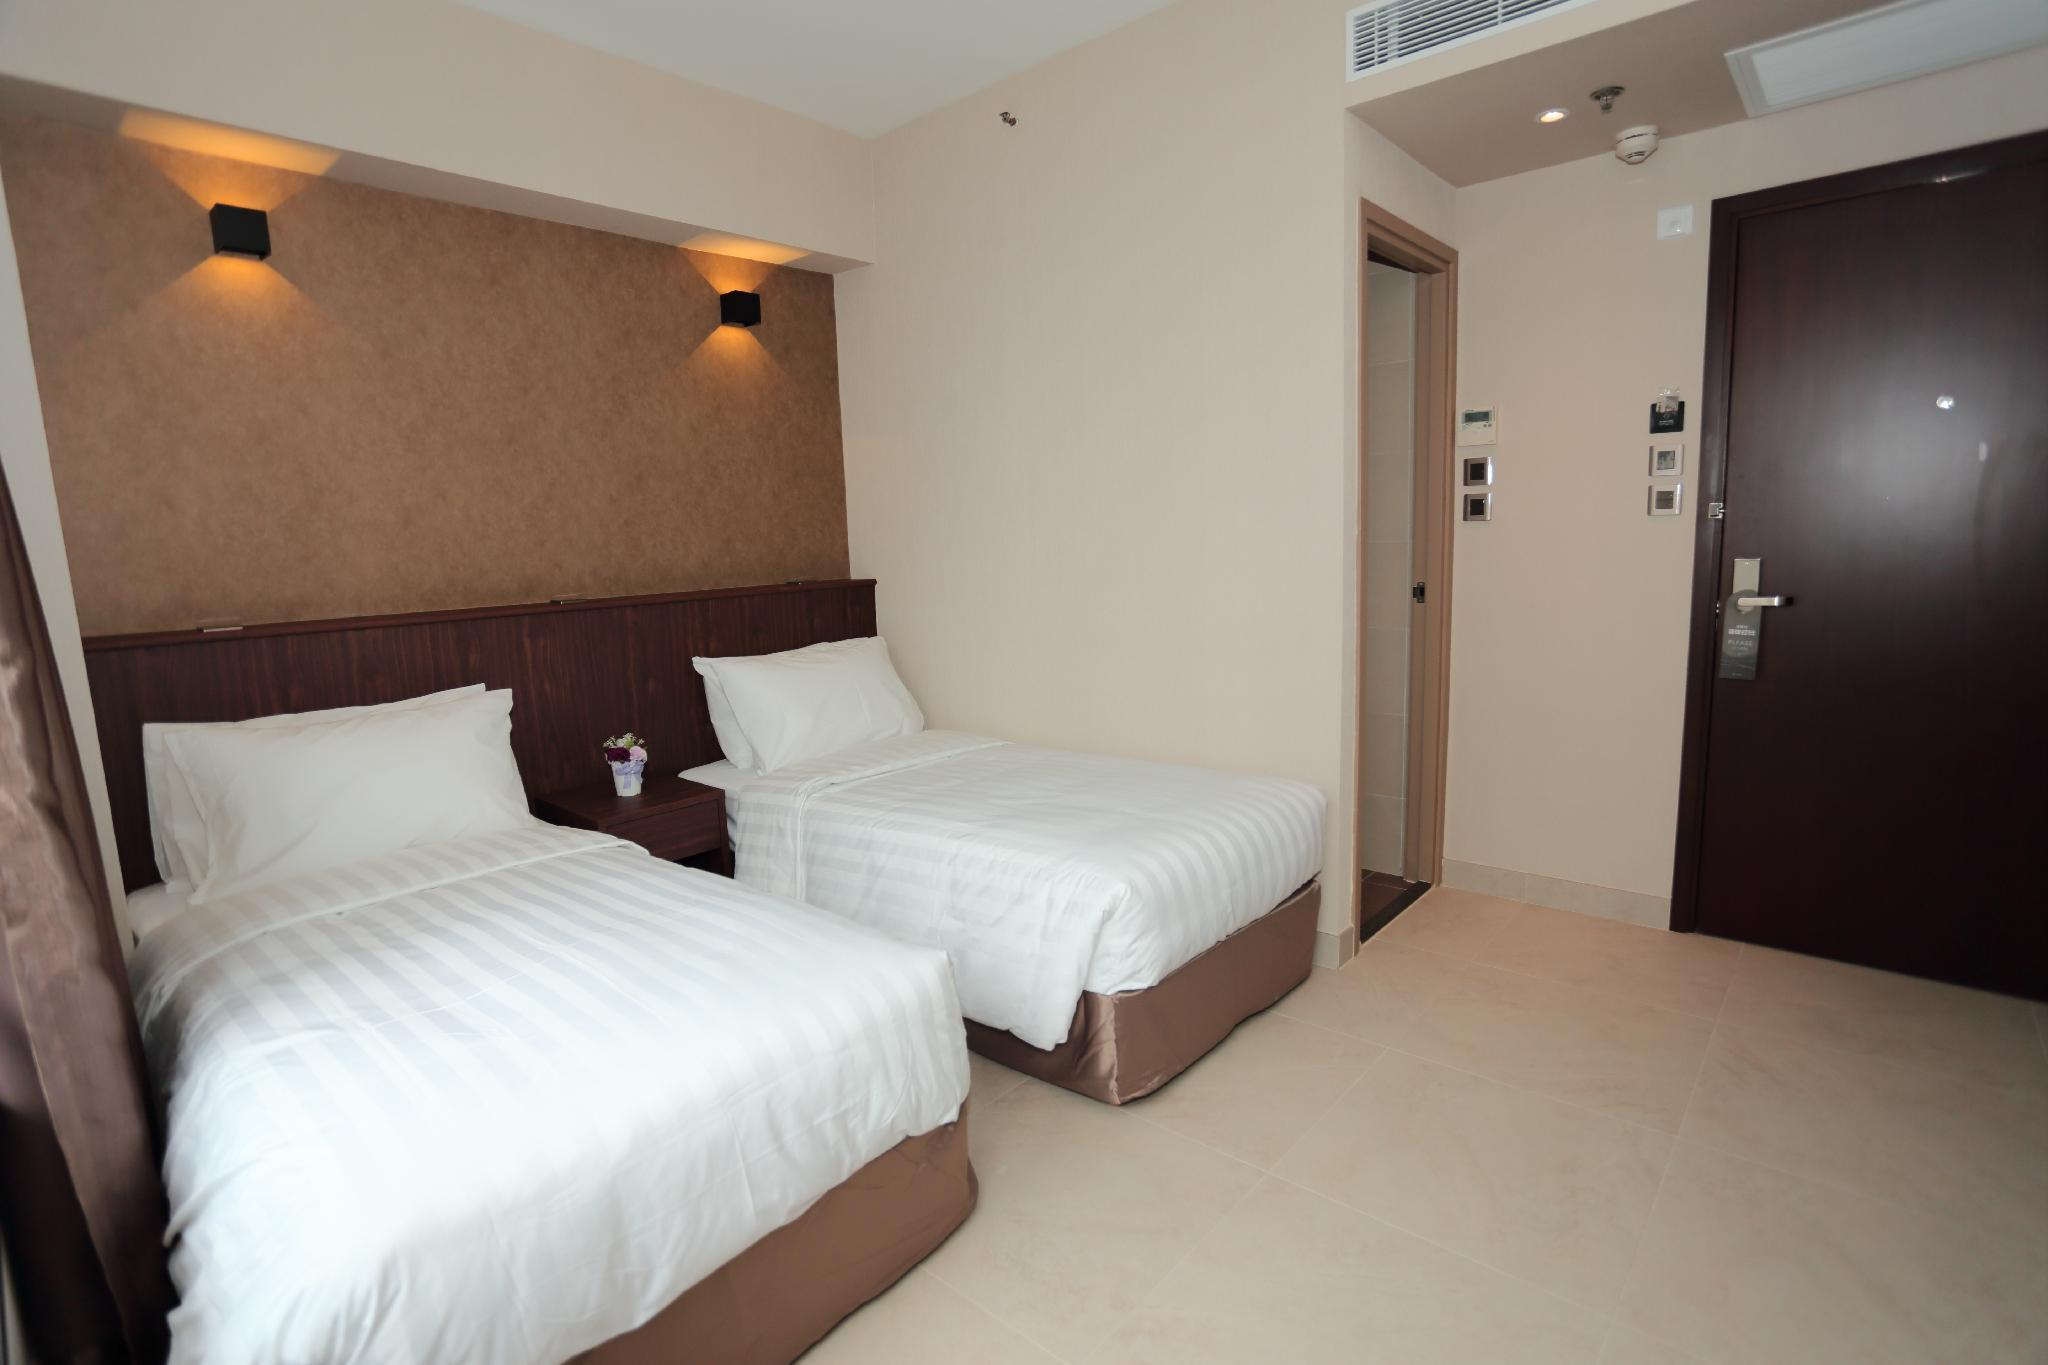 WE Hotel, Central and Western